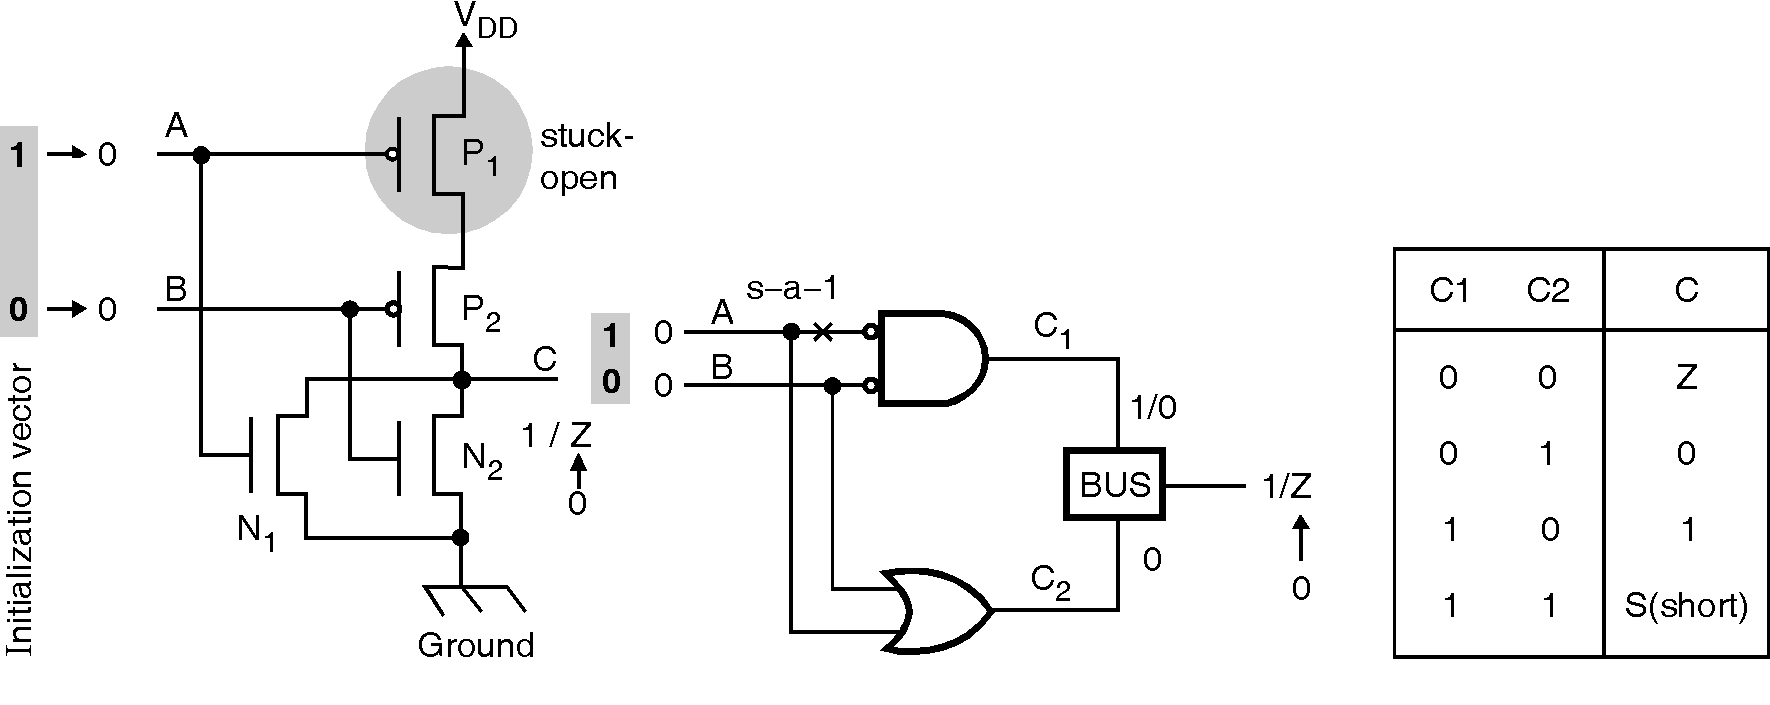 Vlsi Testing Of Circuit Circuits The Simple Model Transistor Is Useful A Mos As Switch Defect Modeled Being Permanently In Either